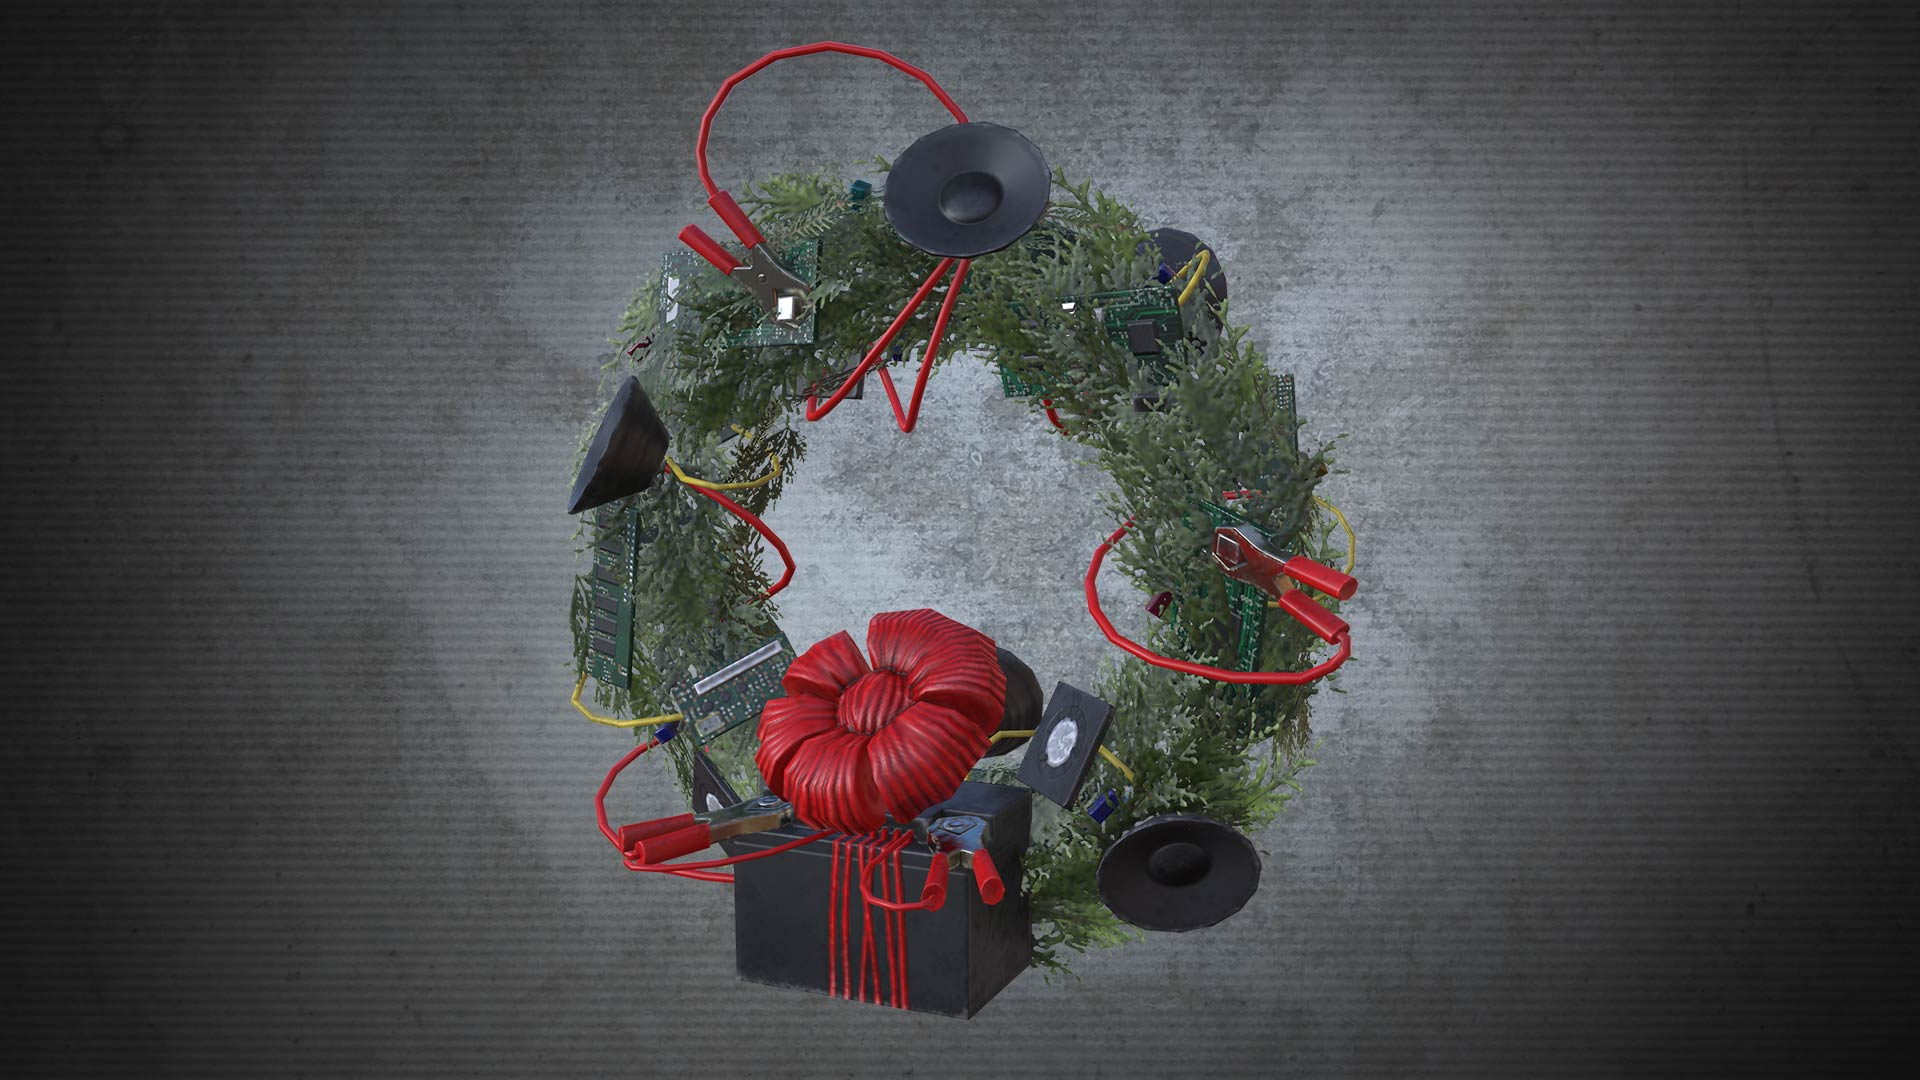 Dead Rising 4 electric wreath weapon